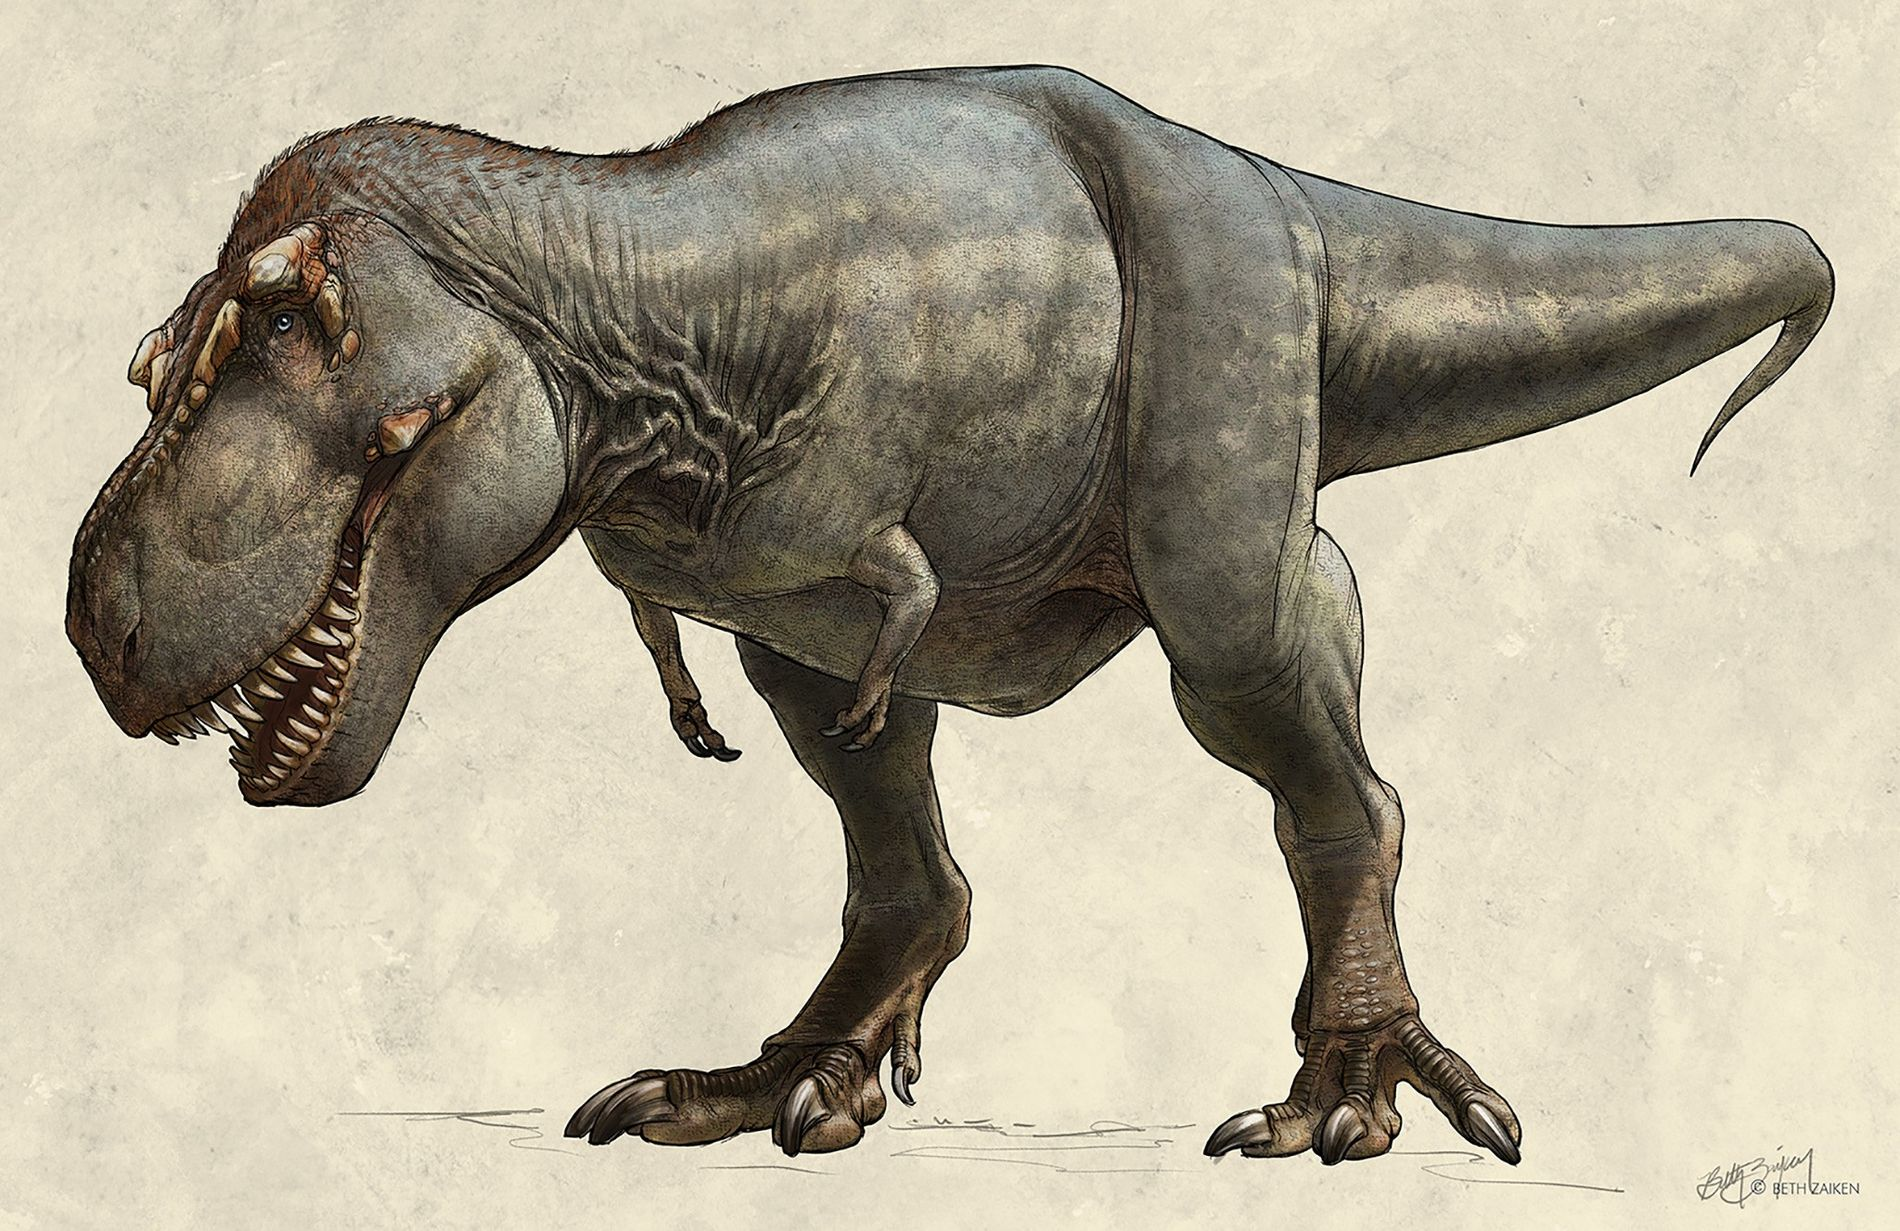 Discovered in 1991, theTyrannosaurus rex specimen known as Scotty weighed an estimated 19,500 pounds in life—making ...